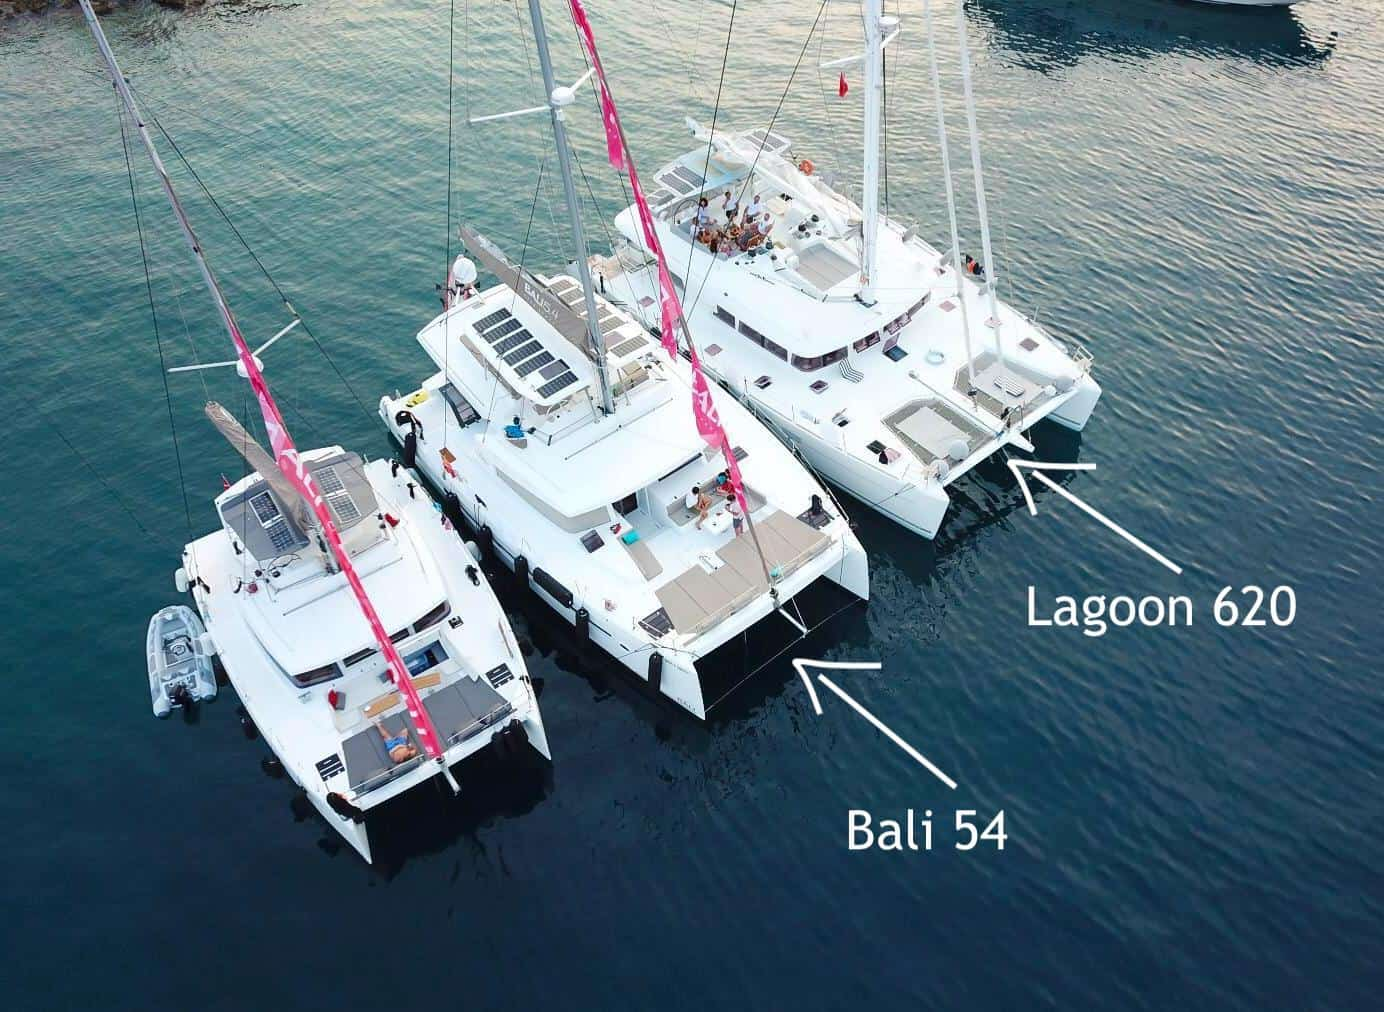 Bali 5.4 catamaran comparisons